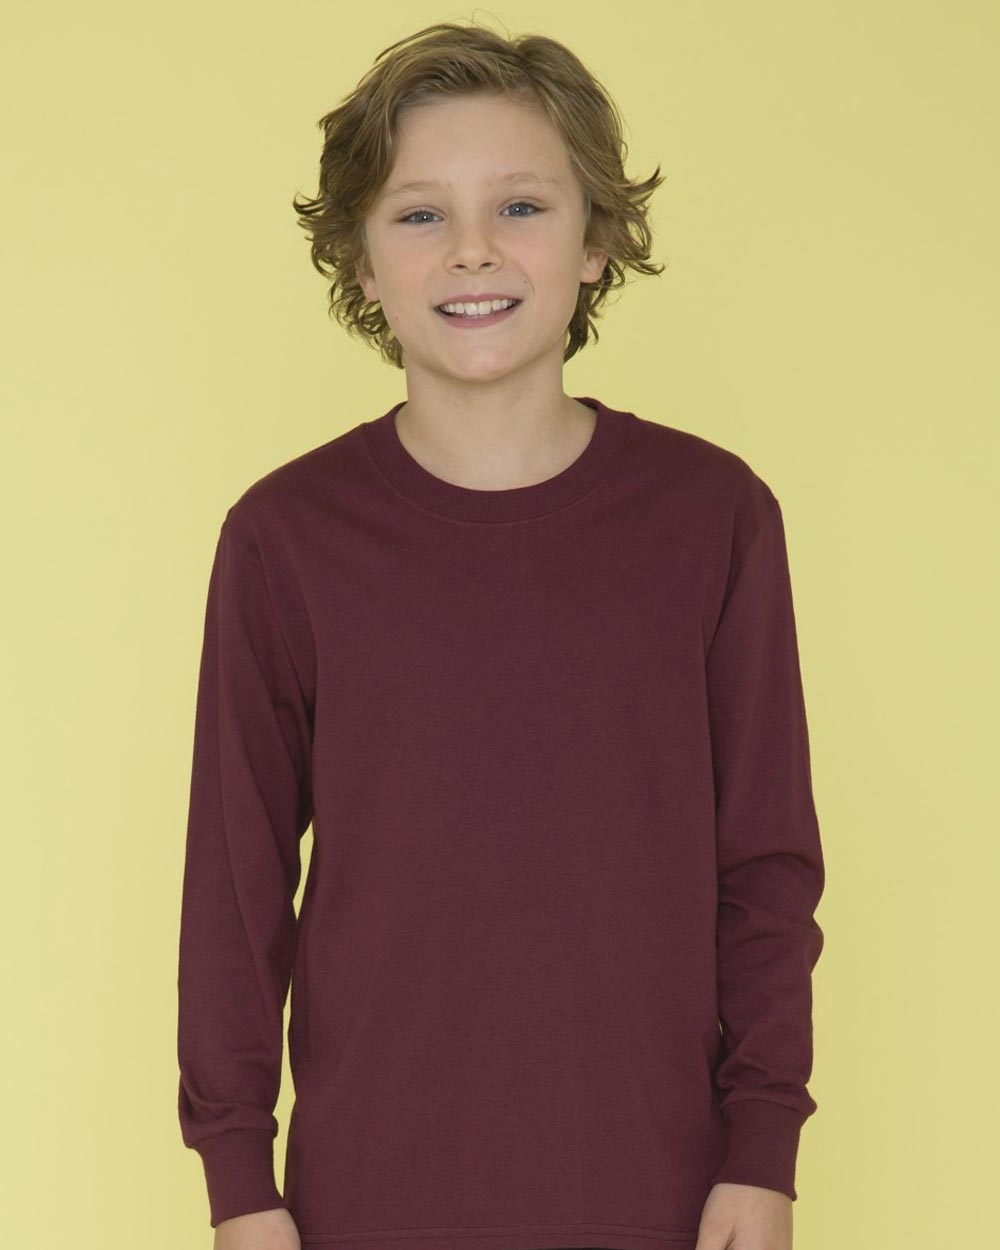 ATC 1015Y - Everyday Cotton Long Sleeve Youth Tee